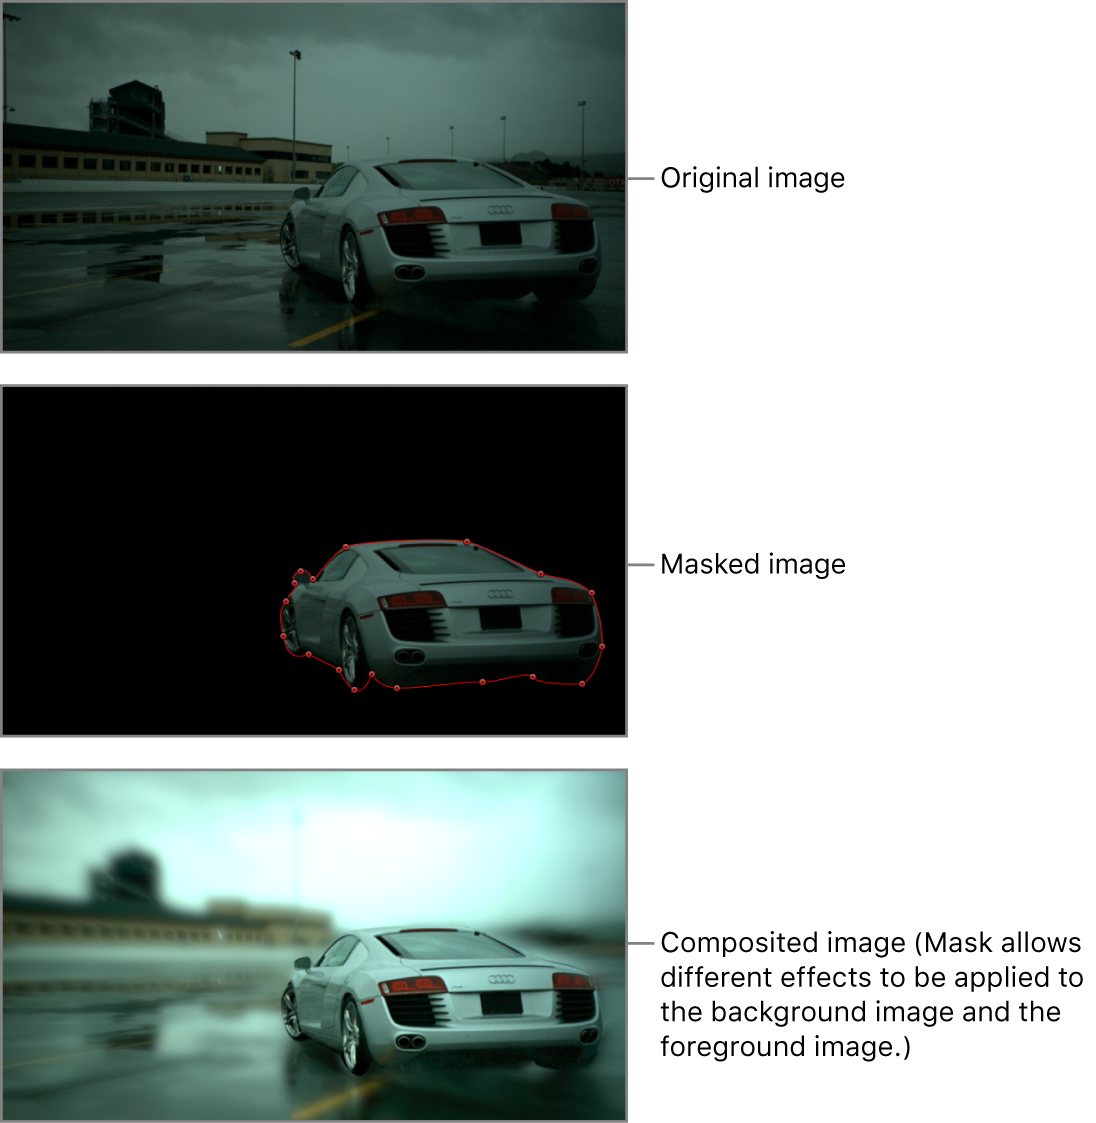 Canvas showing car image prior to masking, mask drawn around the car, and final rotoscoped effect (background is affected by a blur filter, but car is not)